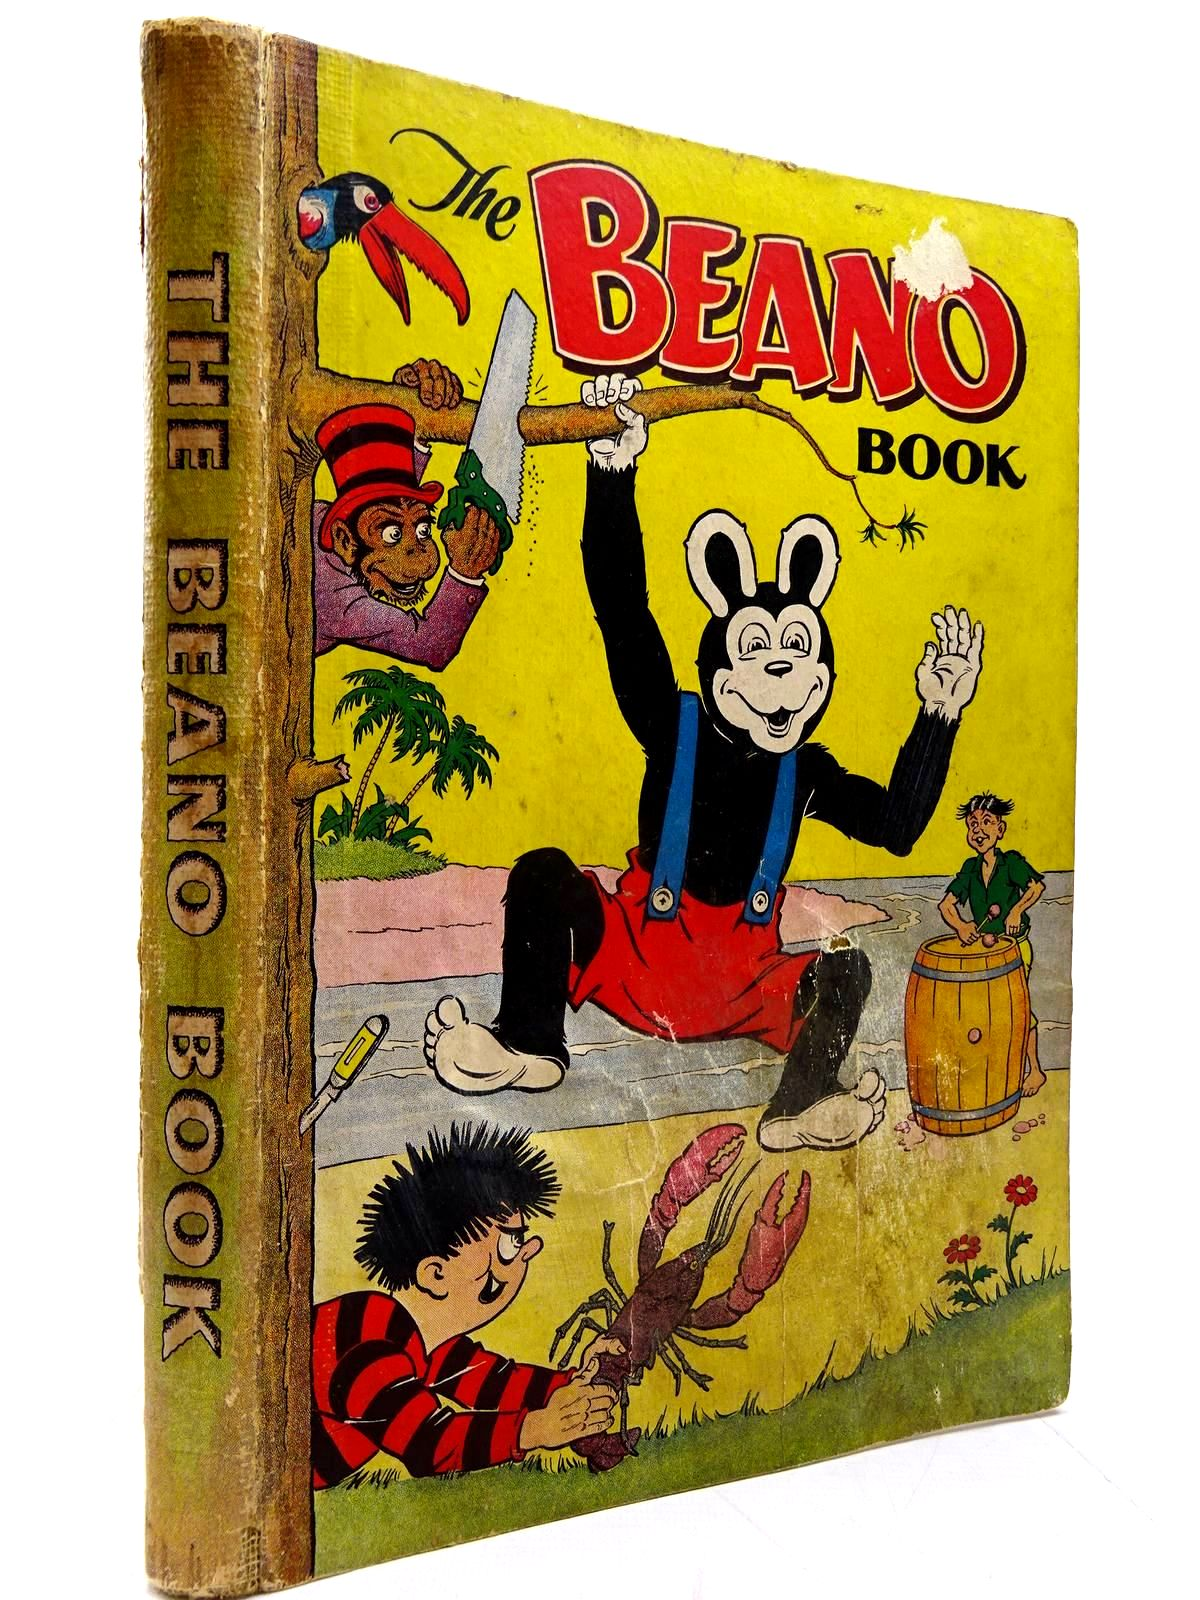 Photo of THE BEANO BOOK 1954 published by D.C. Thomson & Co Ltd. (STOCK CODE: 2130612)  for sale by Stella & Rose's Books